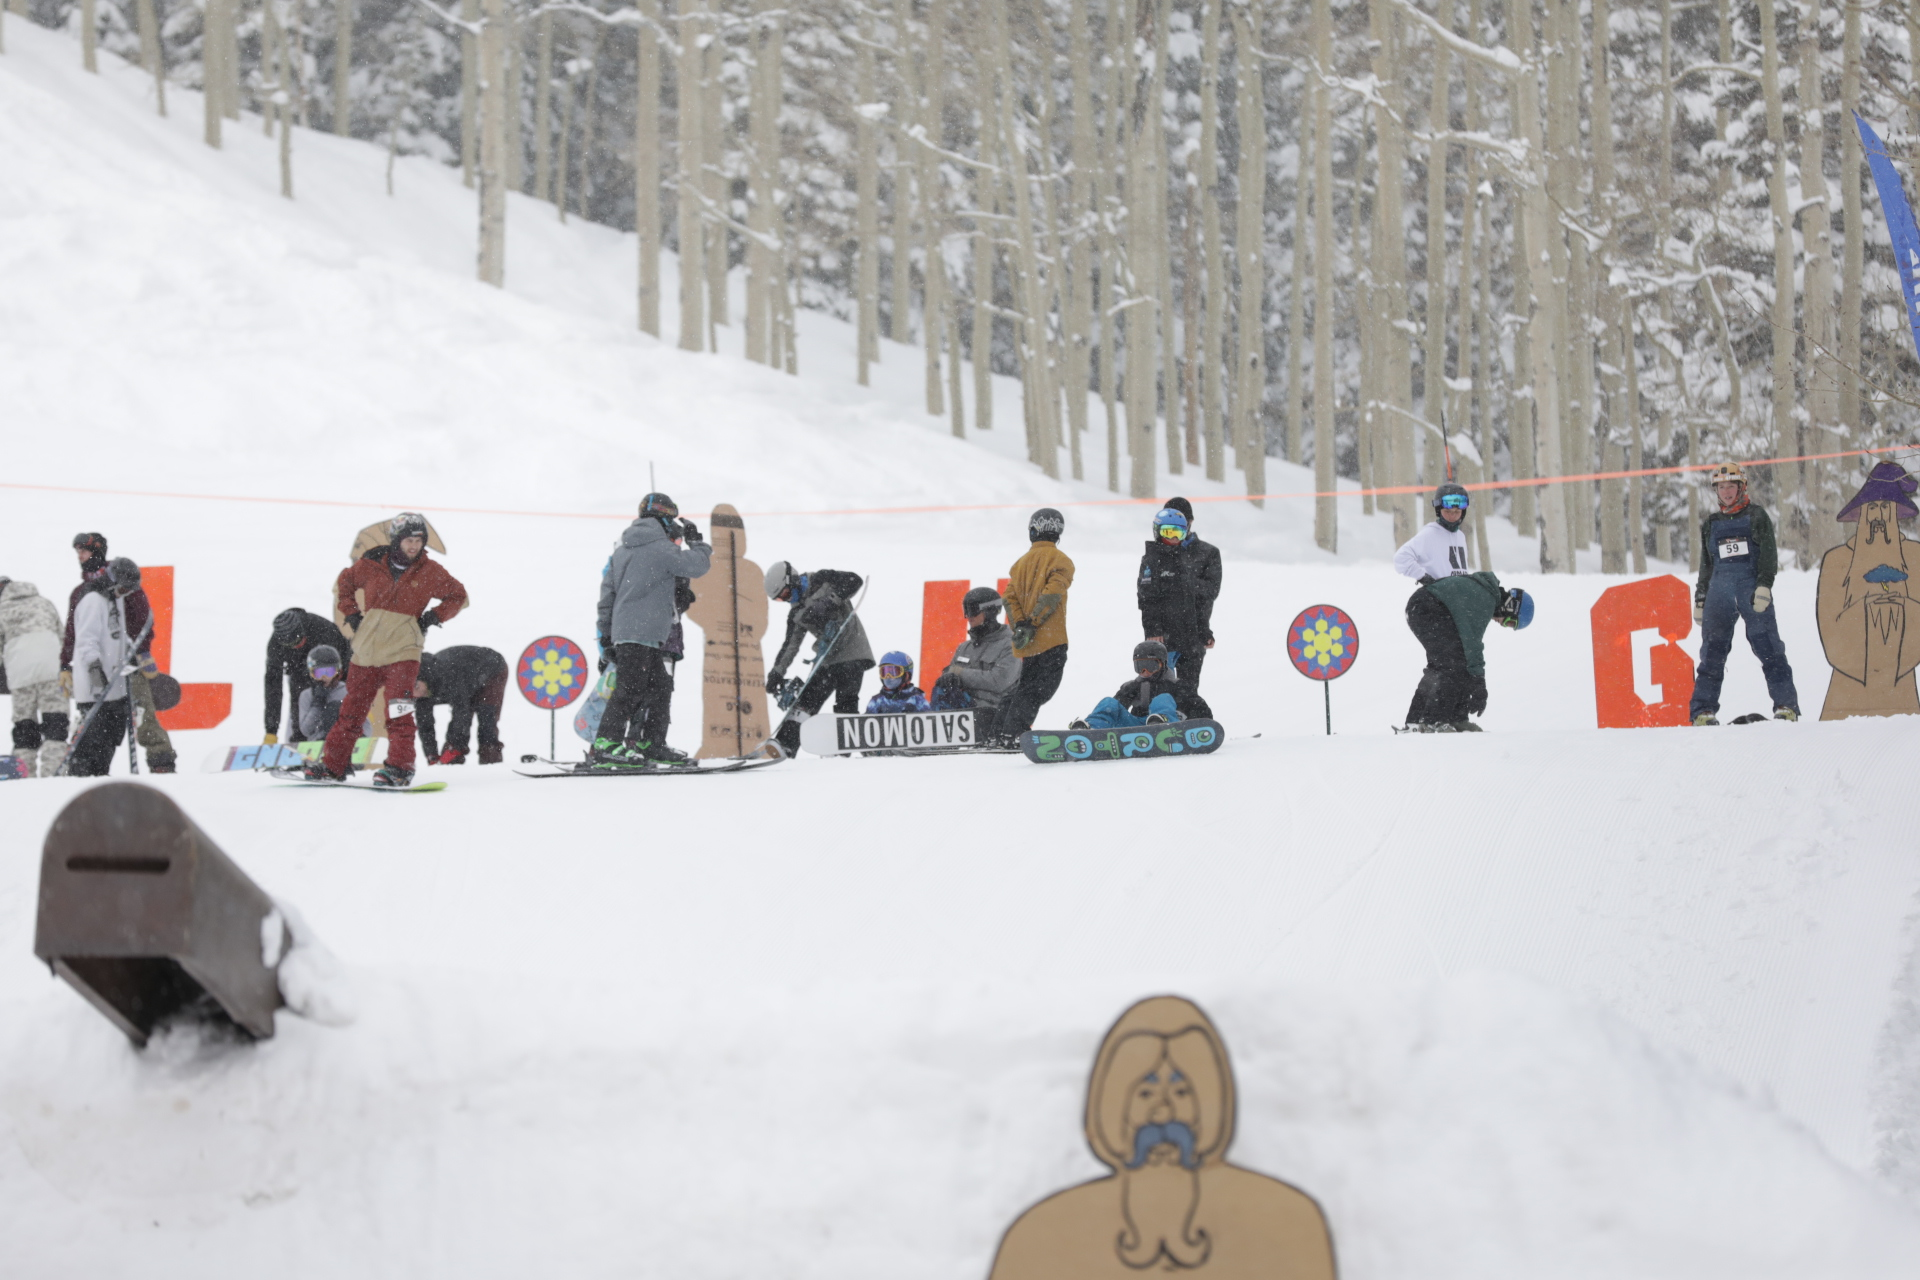 Snowboarders preparing for their next tricks.